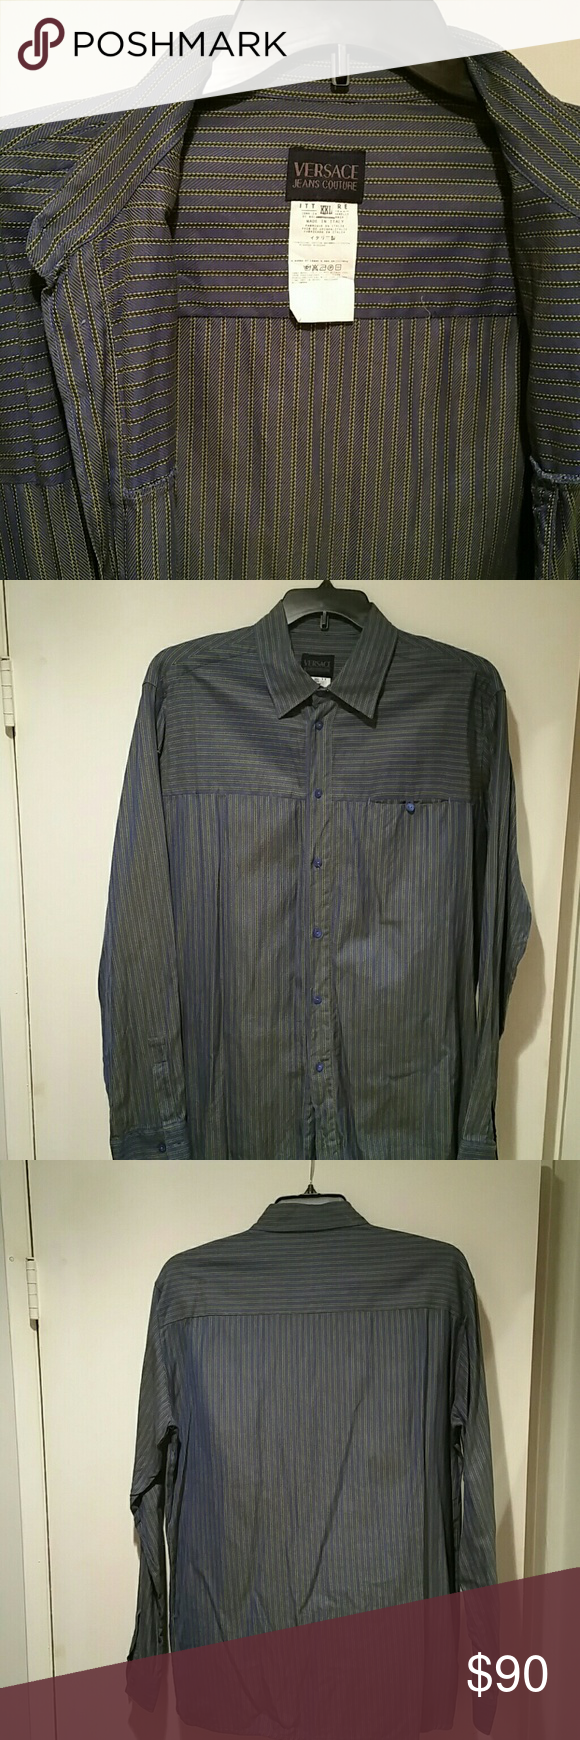 f87b1ef0a Versace Jeans Couture Shirt Versace Jeans Couture long sleeve shirt. Blue  stripes with opalescent green undertone. ULTRA SLIM FIT.